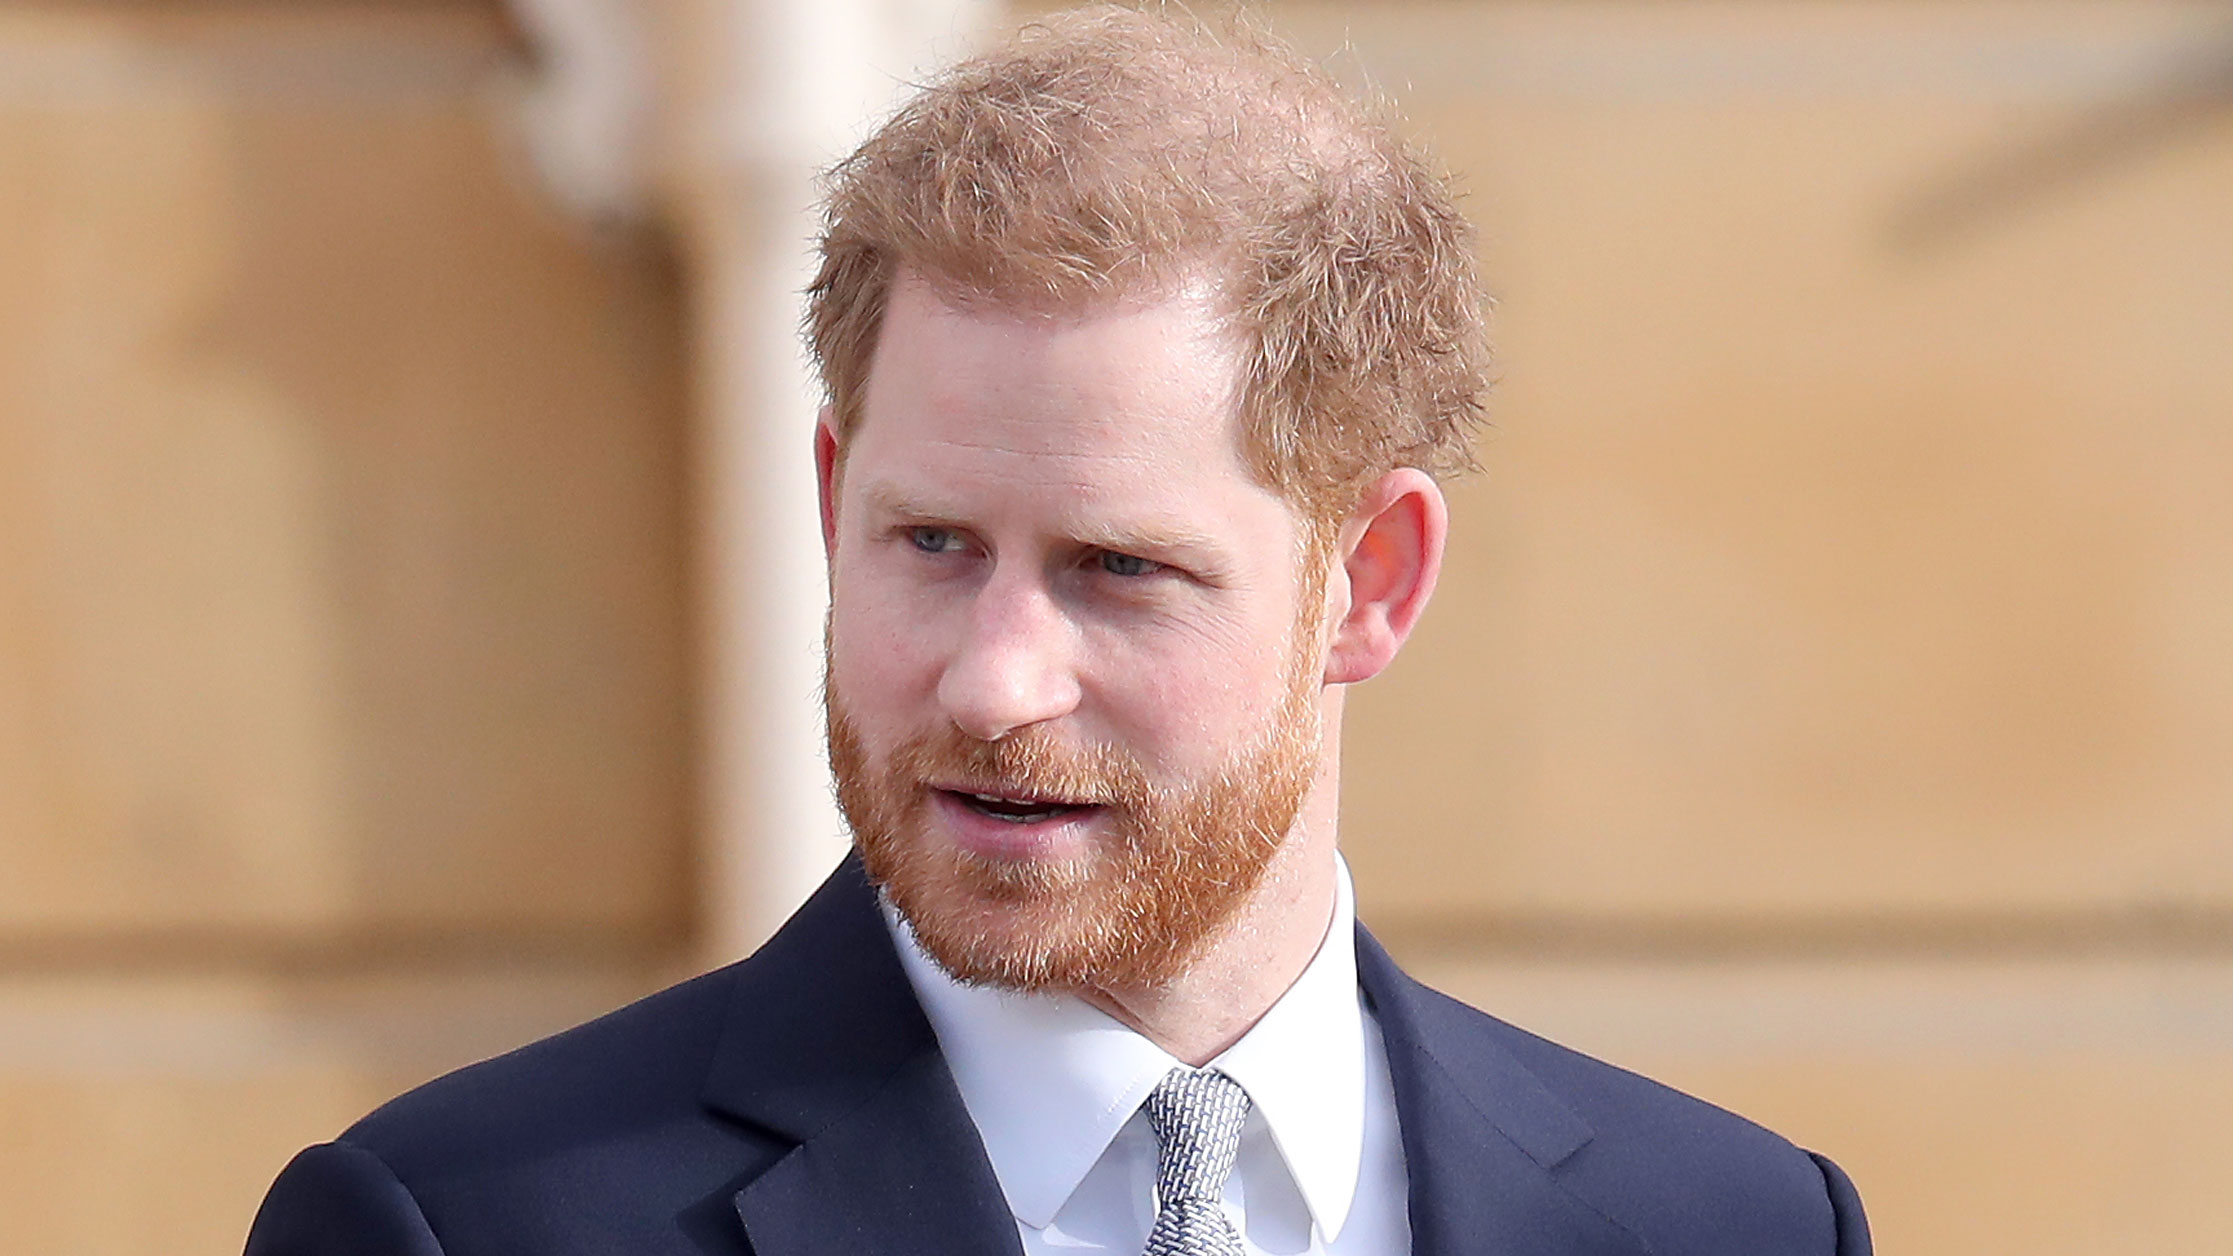 Prince Harry at Buckingham Palace in London on January 16, 2020.